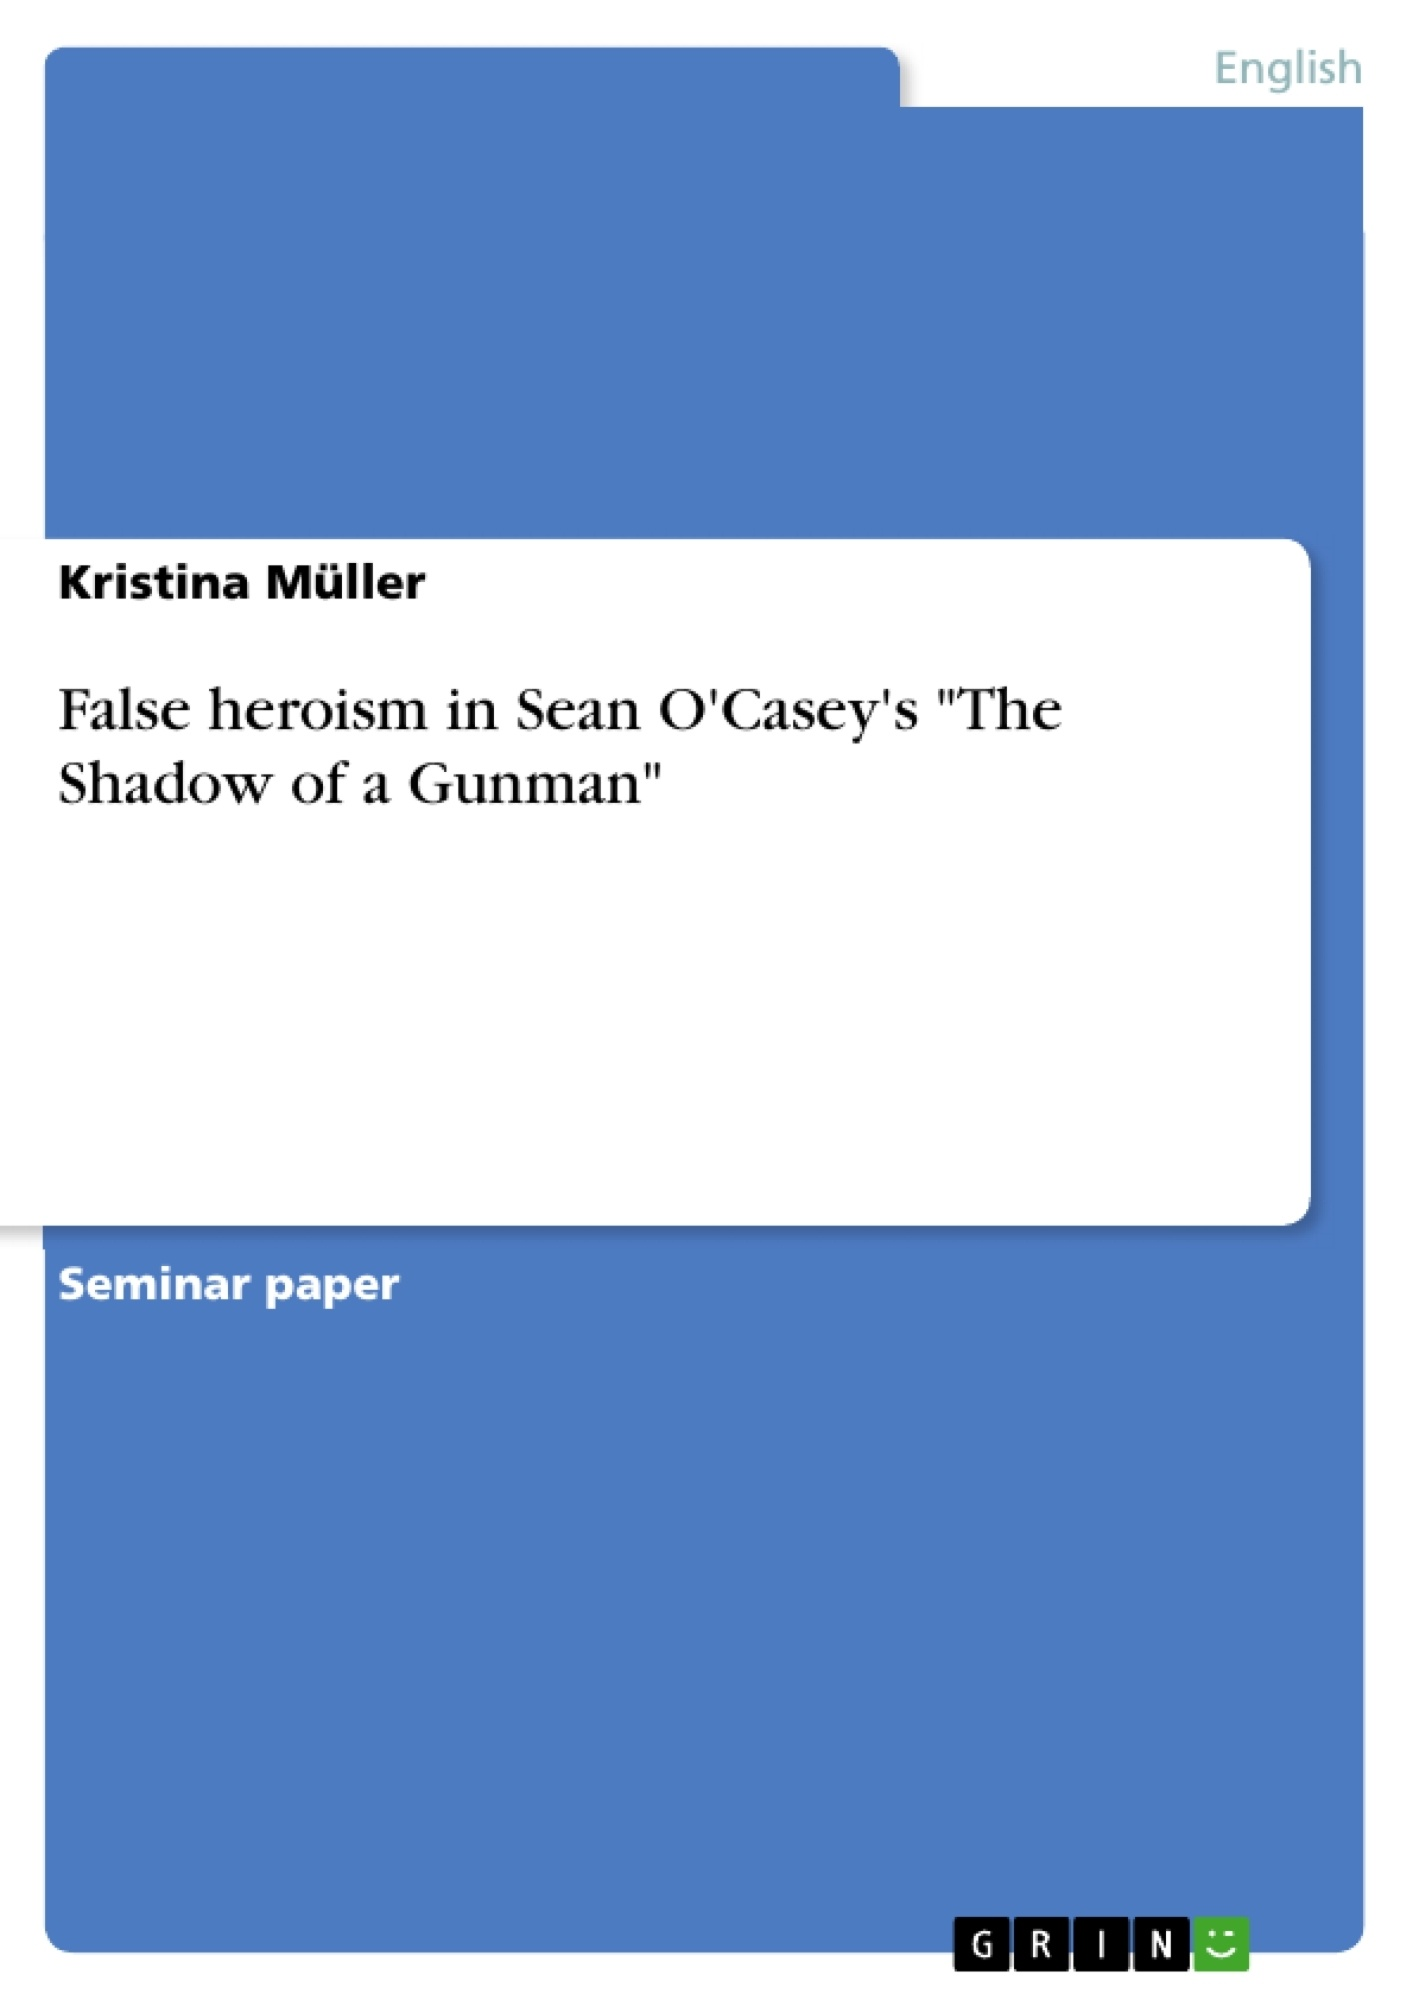 """Title: False heroism in Sean O'Casey's """"The Shadow of a Gunman"""""""